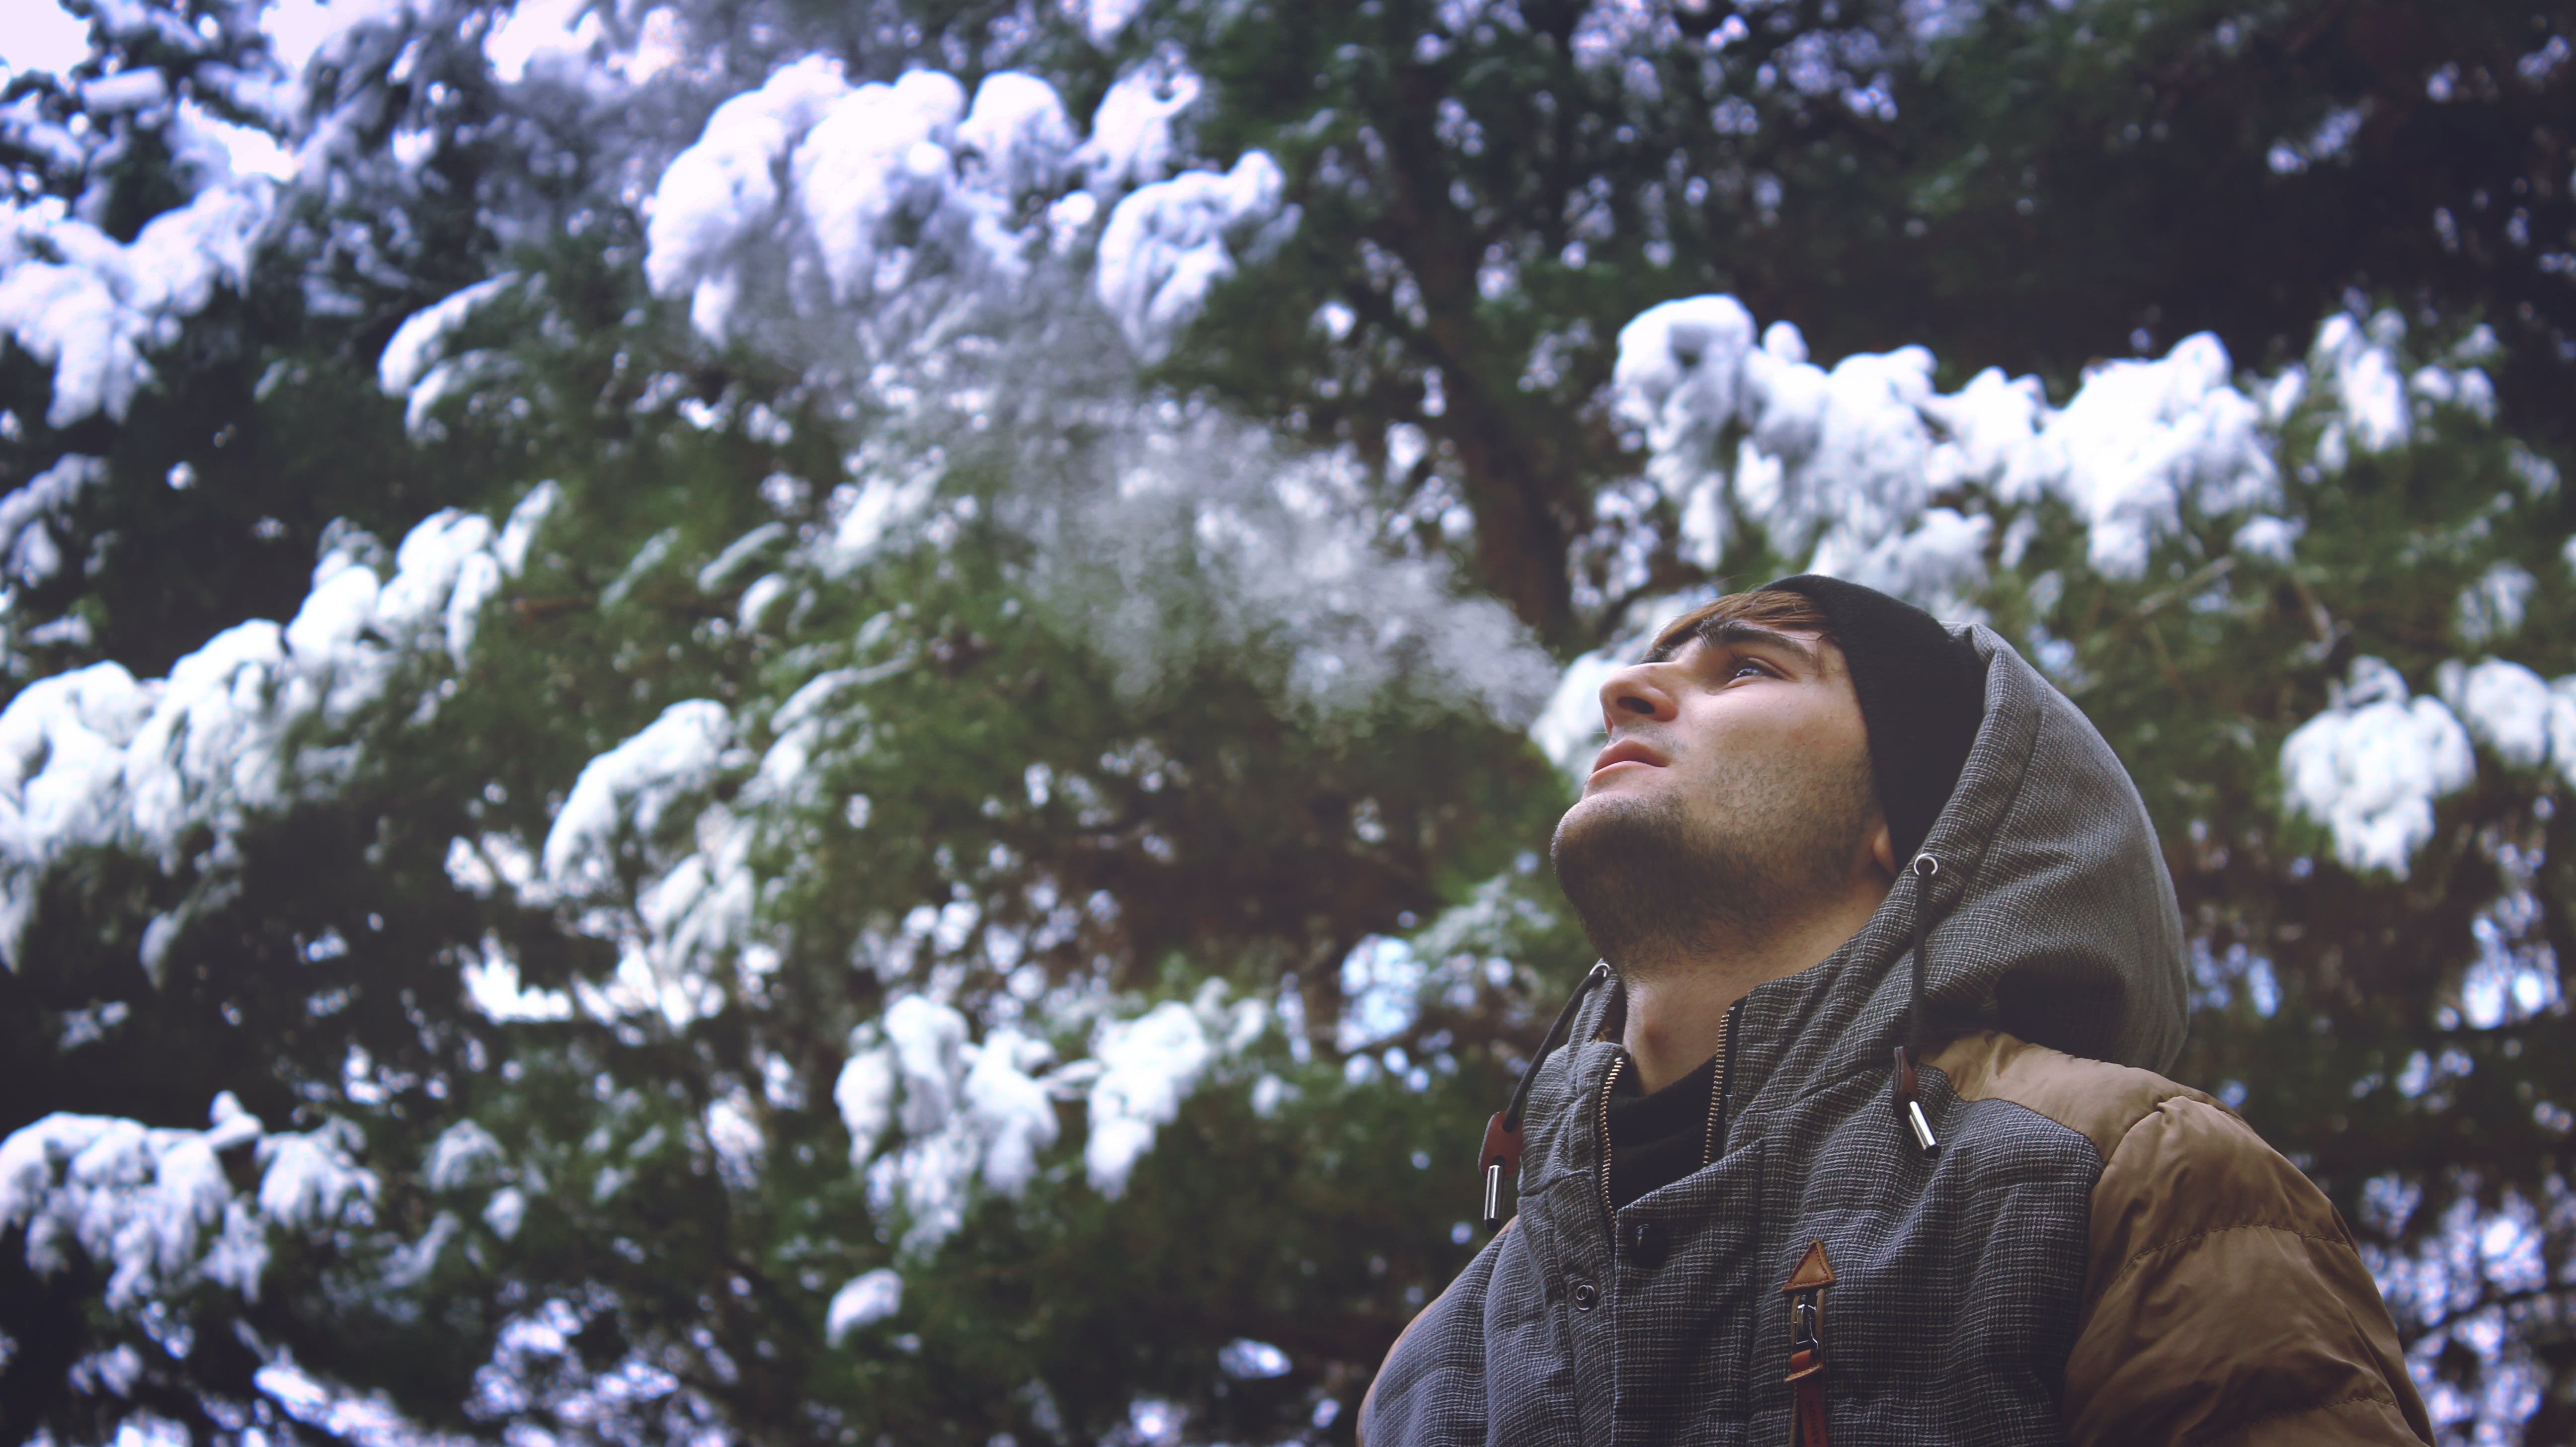 Young Man Looking Up in Forest